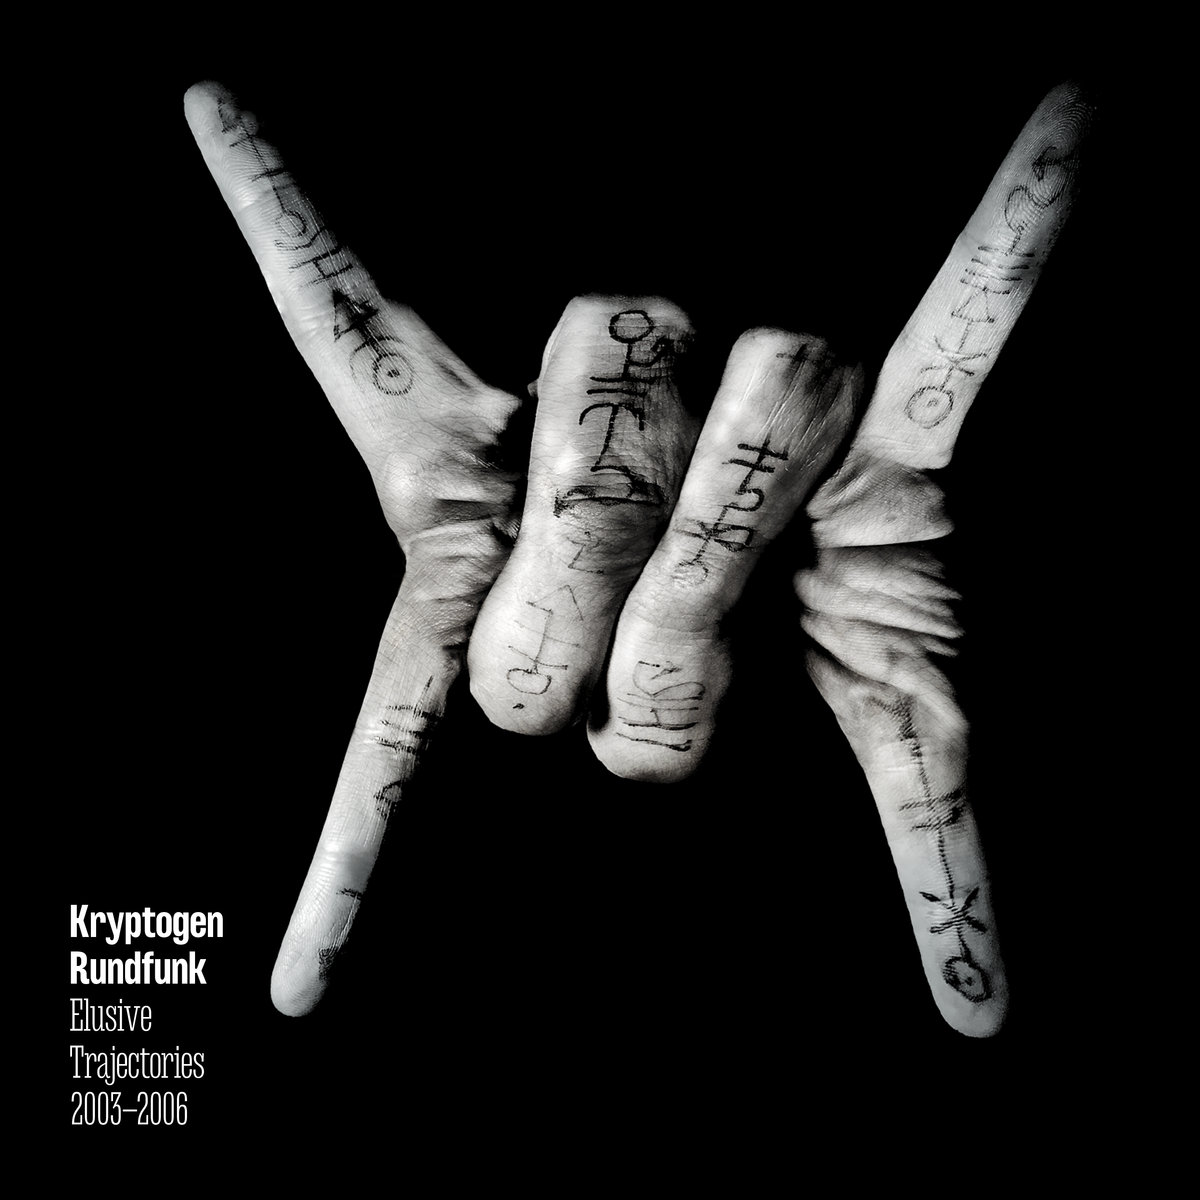 Kryptogen Rundfunk - Elusive Trajectories 2003-2006